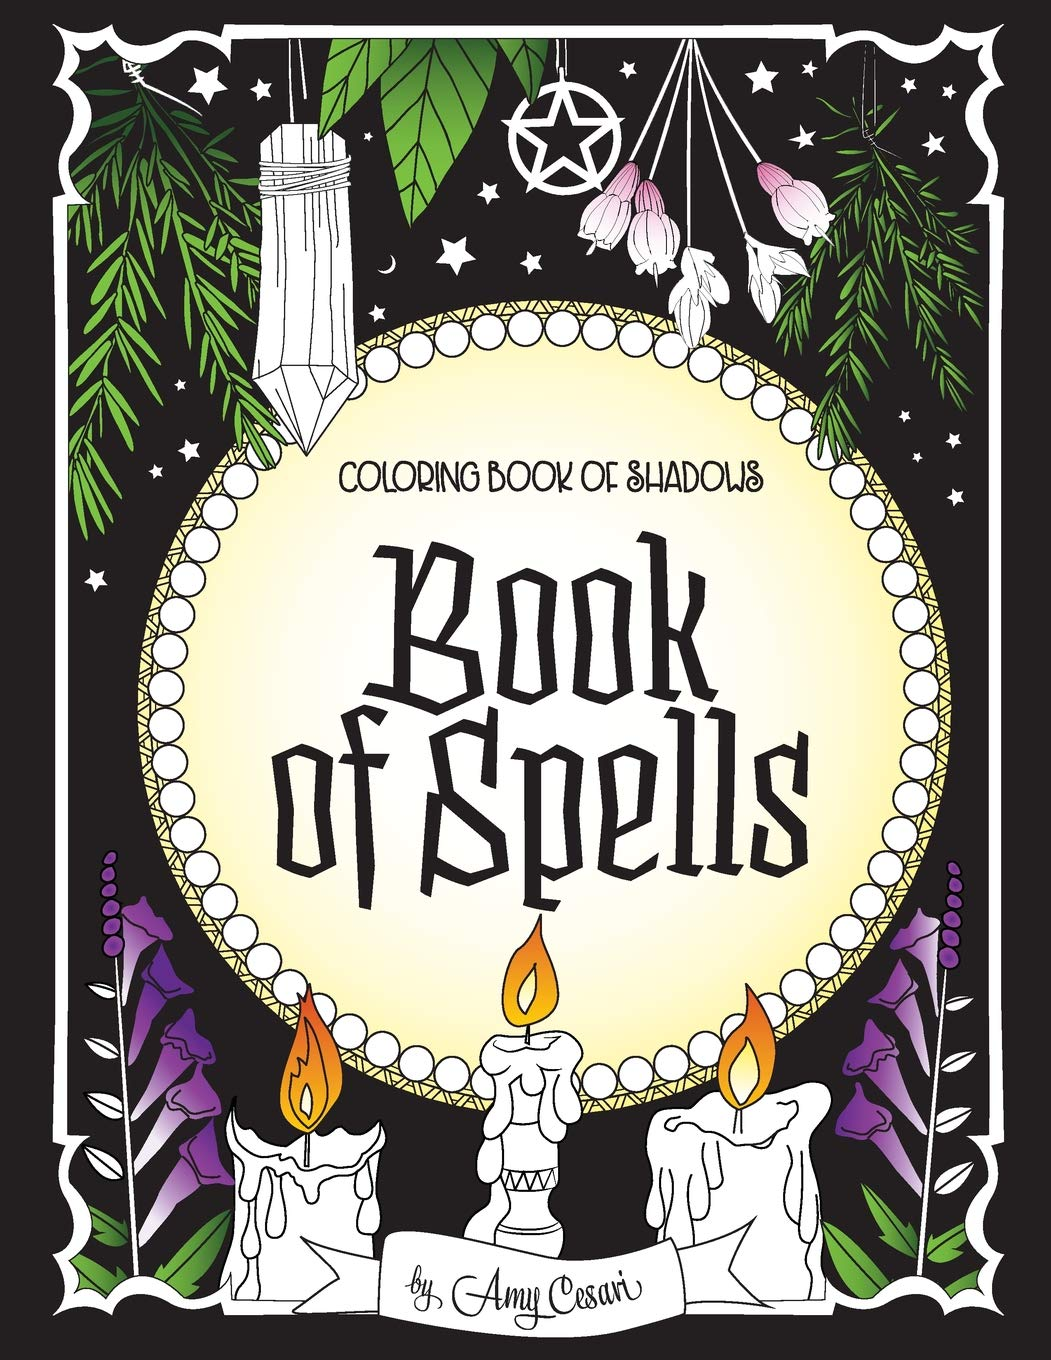 Coloring Book Shadows Spells product image